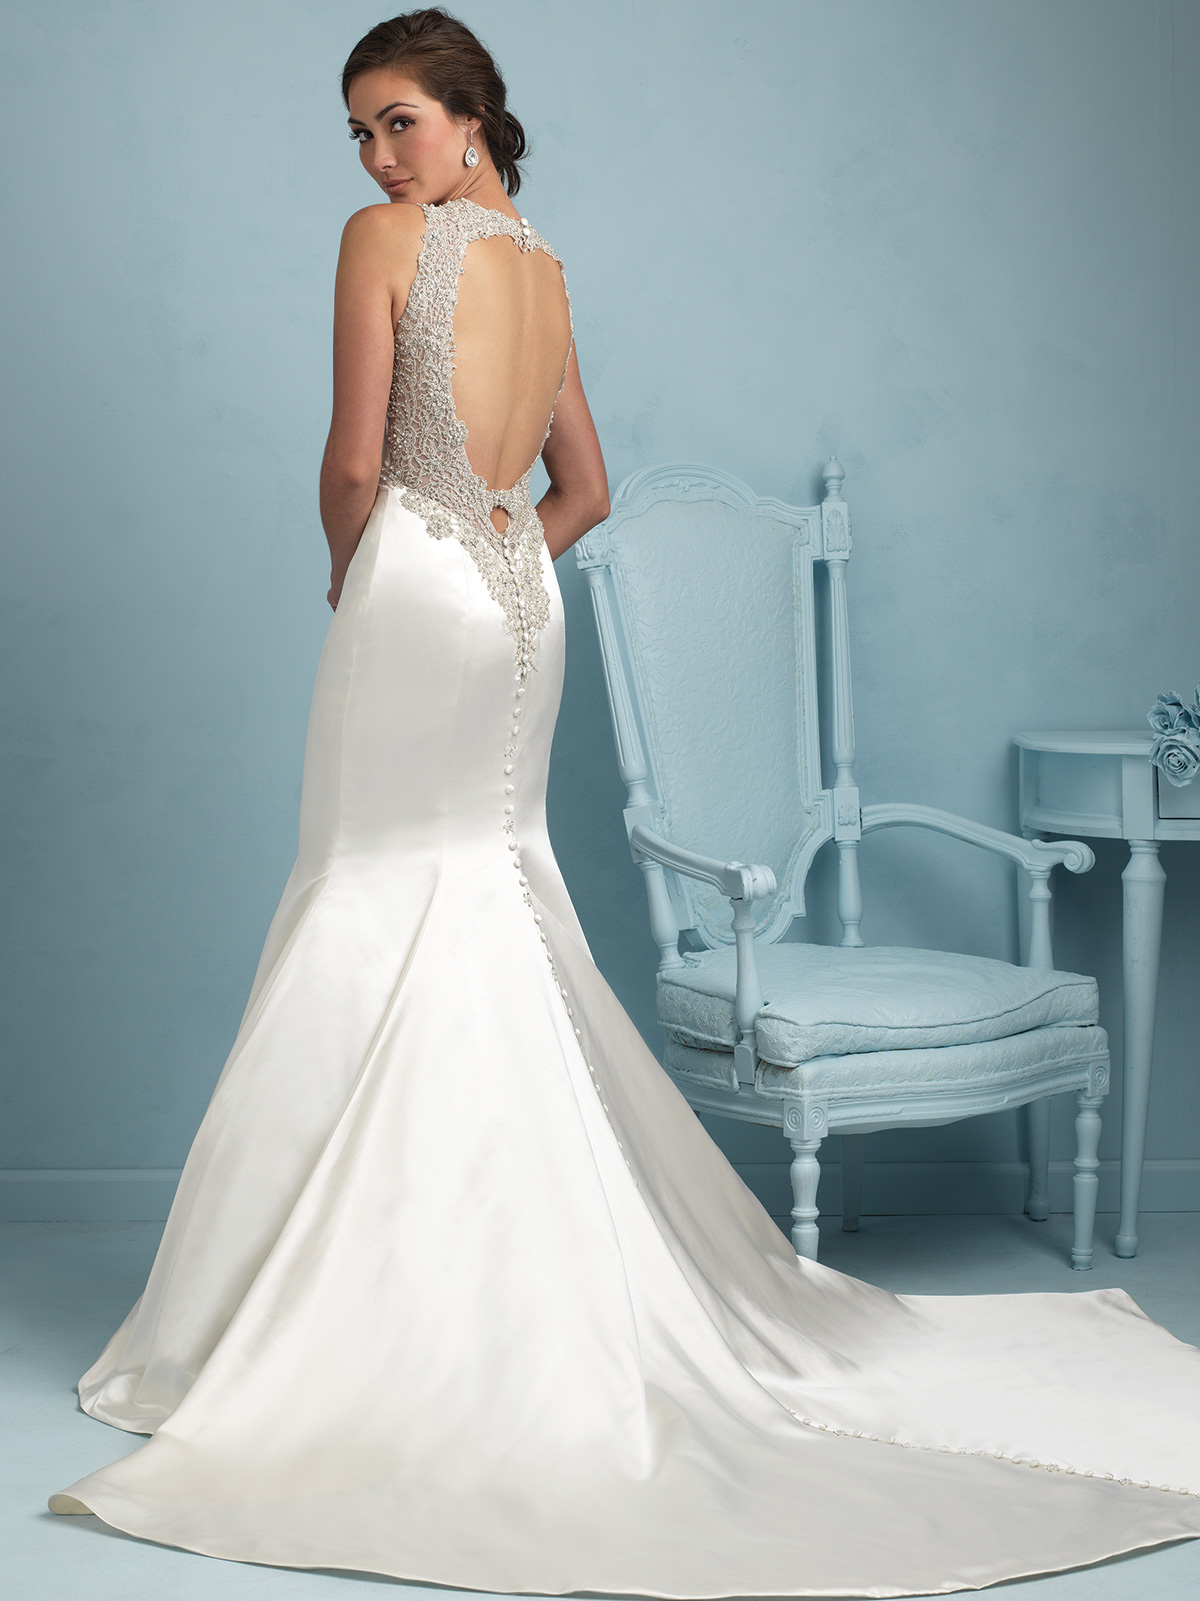 Allure bridal dress 9219 dimitradesigns allure bridal dress 9219 ombrellifo Choice Image